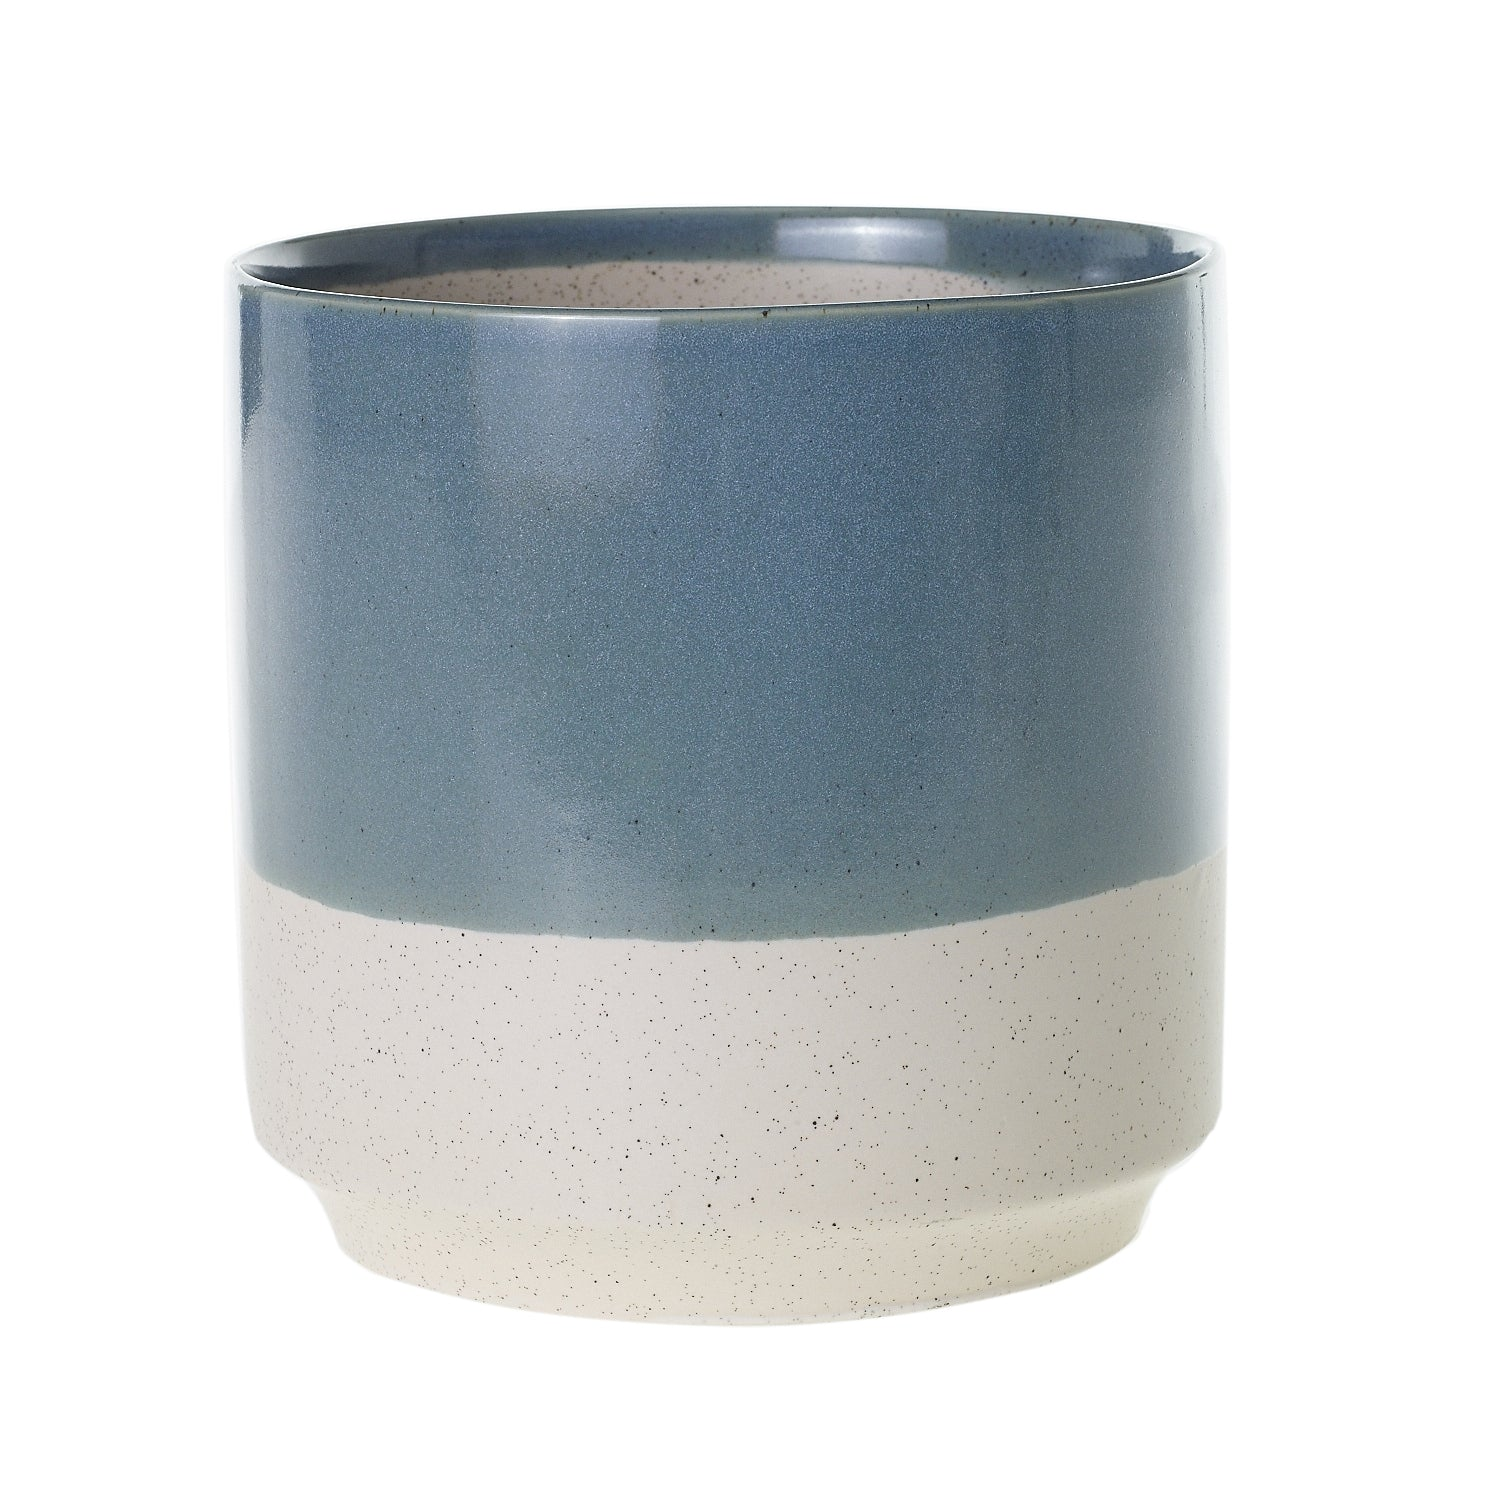 "Calm Pot || 6"" blue"